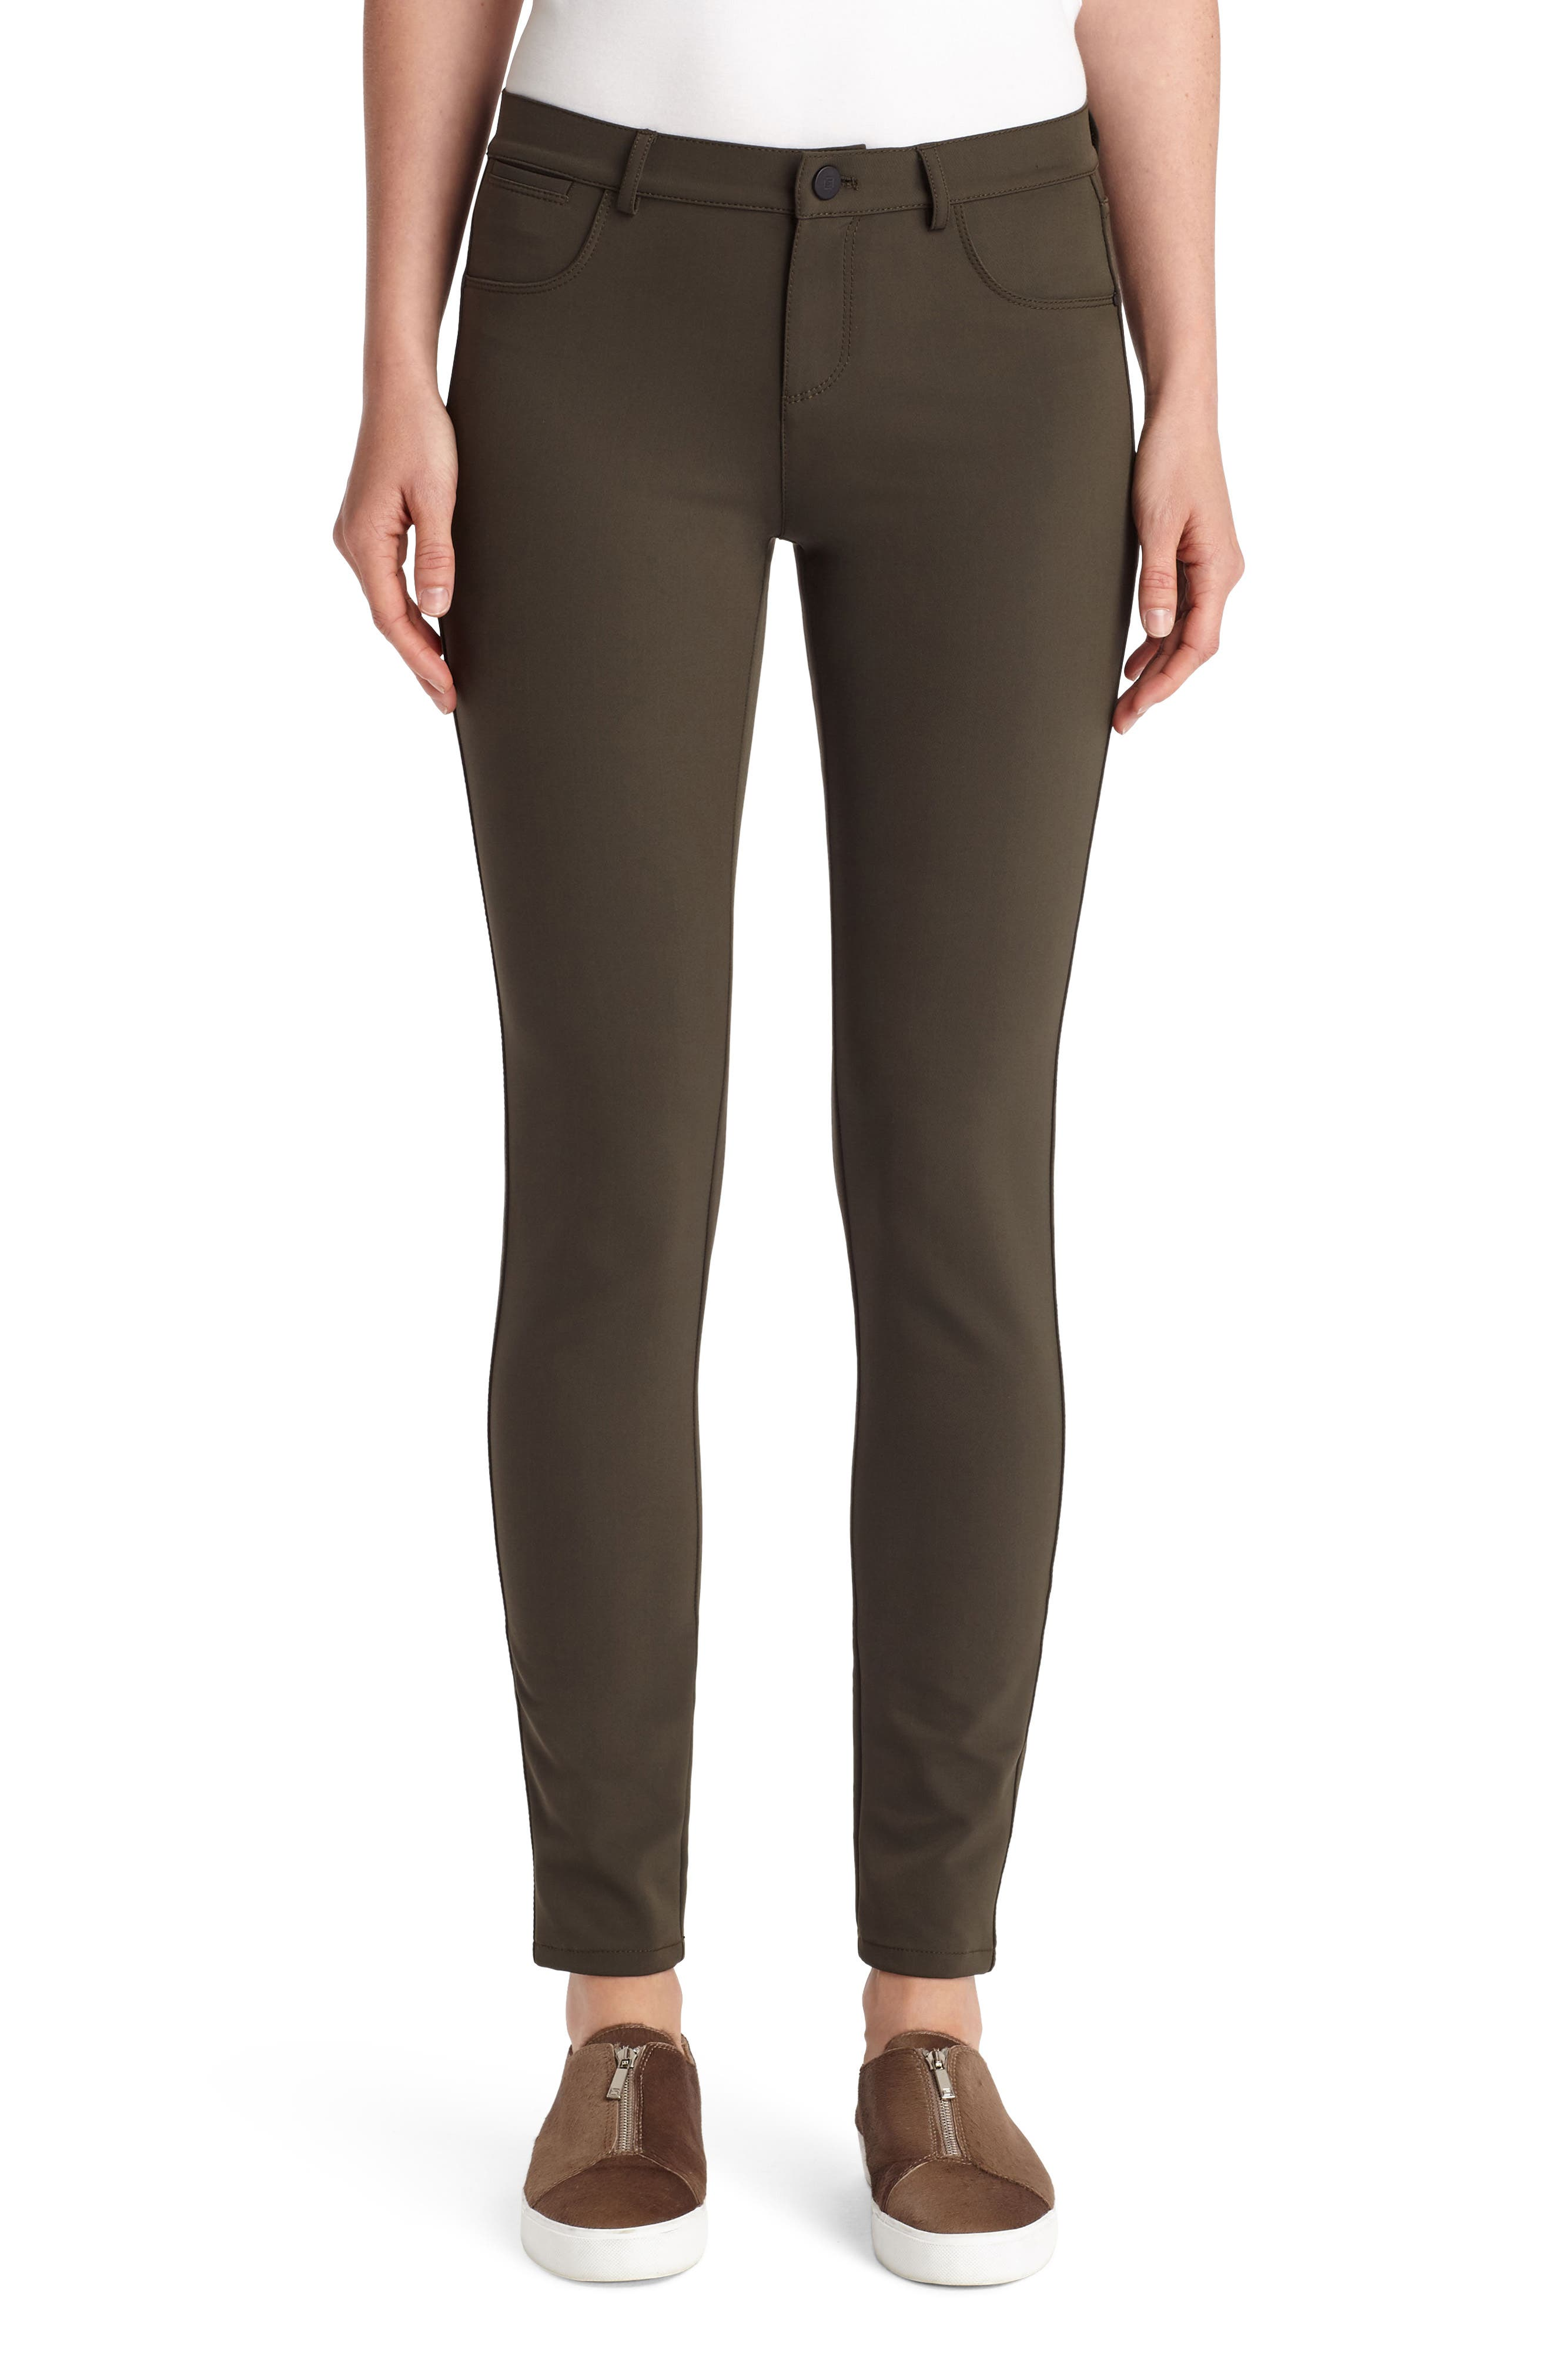 Mercer Acclaimed Stretch Skinny Pants in Olive